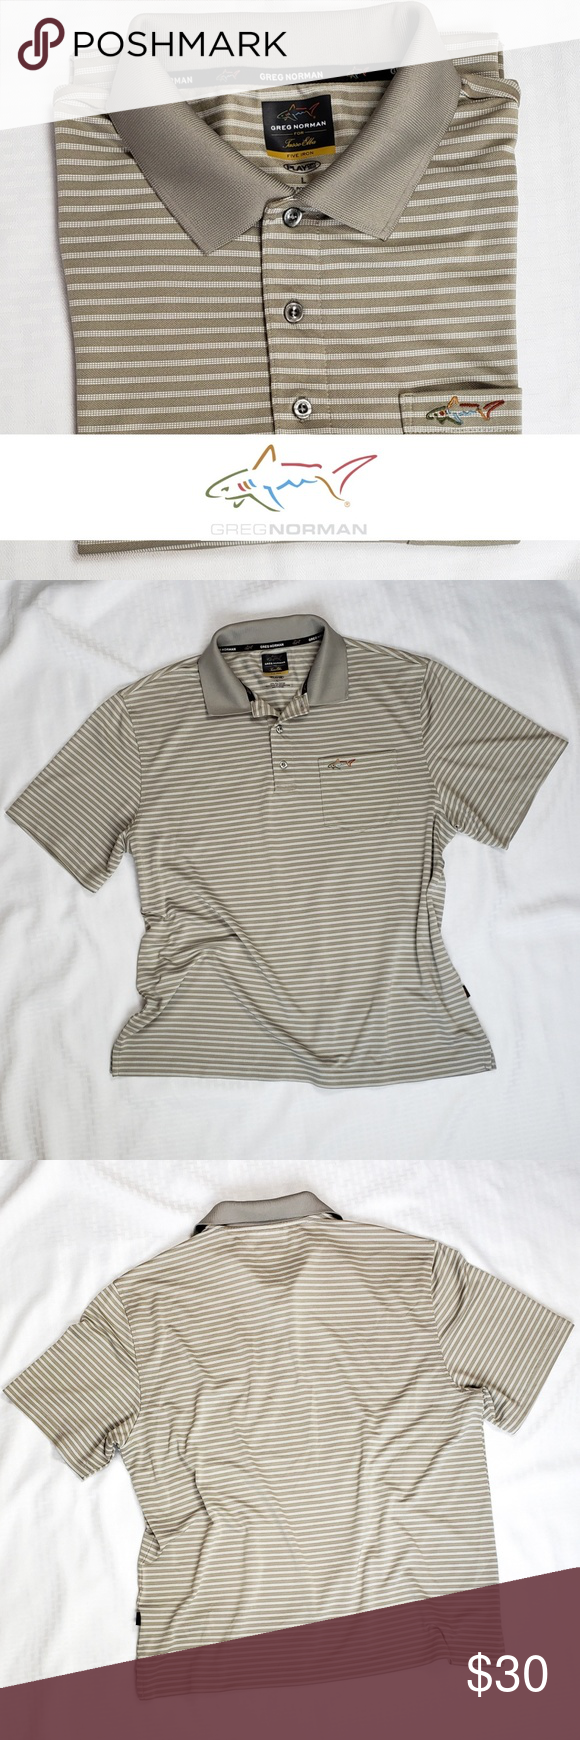 Greg Norman Golf Polo L Clothes Design Fashion Design Fashion